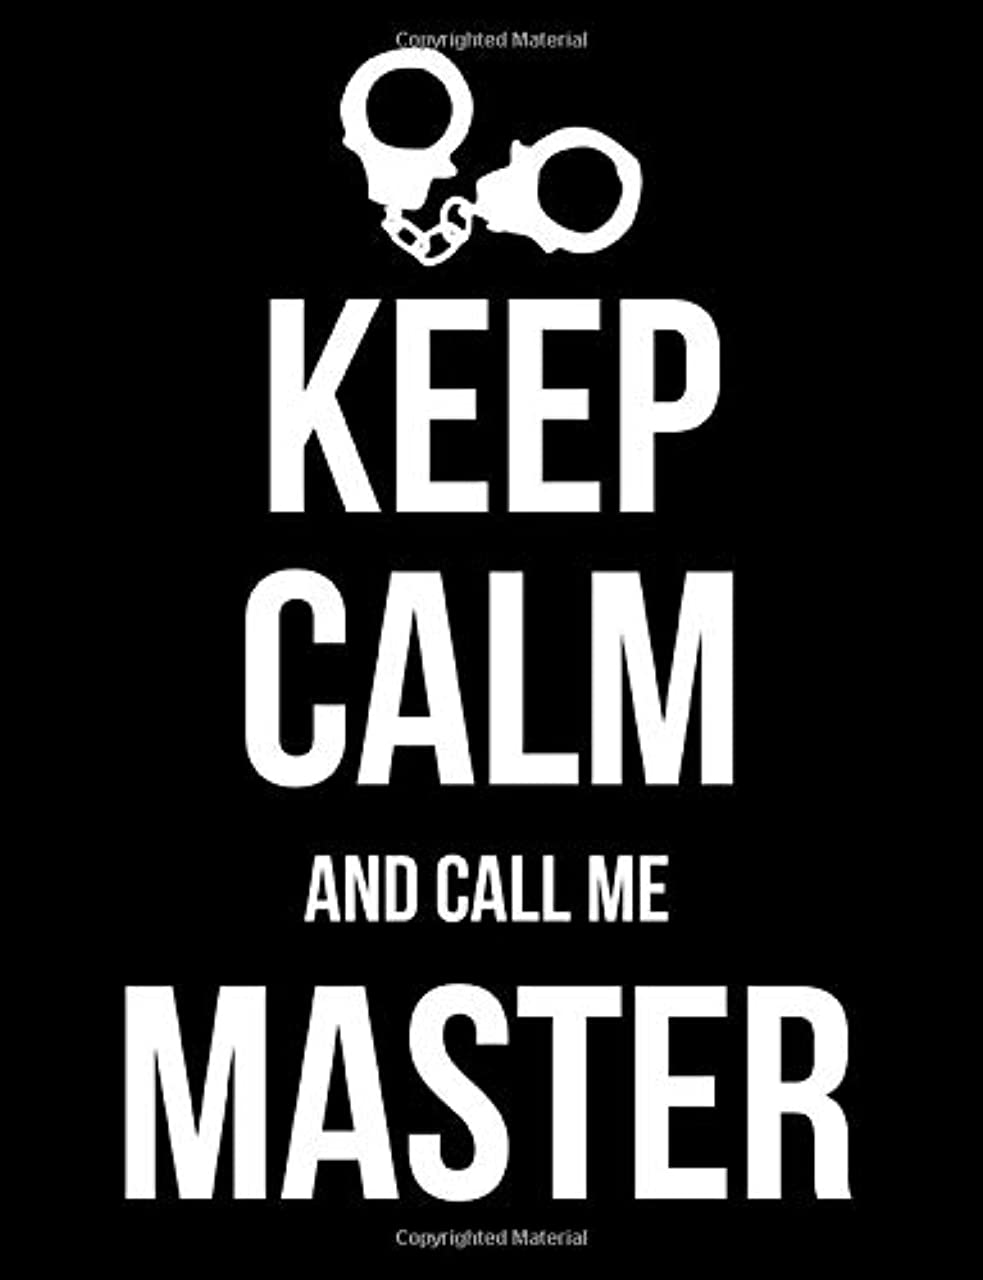 期待タイプ突き出すKeep Calm and Call Me Master: BDSM Dominant Submissive Adult Journal Notebook 120 lined pages 6.44